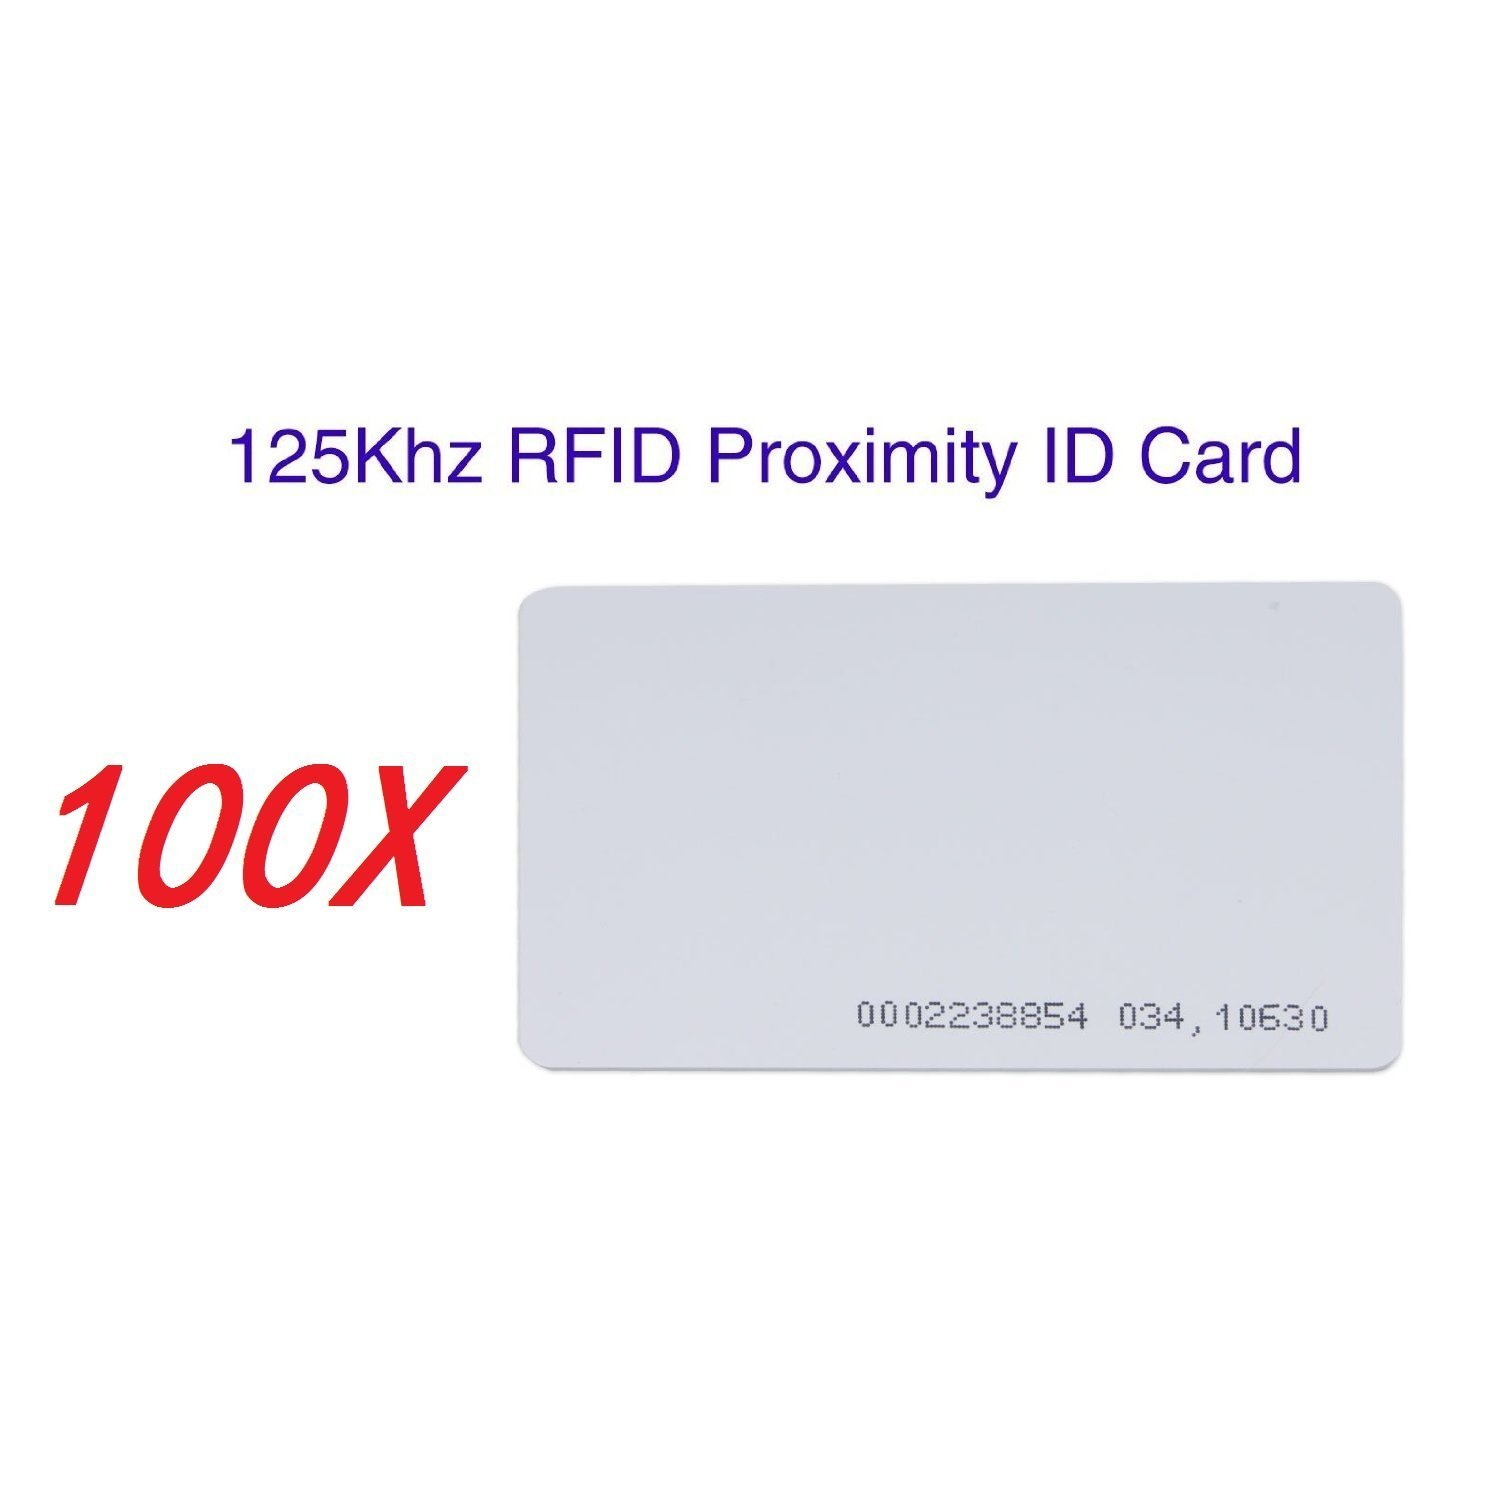 SainSmart Generic White Plastic Contactless 125kHz TK4100 EM4100 RFID Proximity ID Smart Entry Access Card (Pack of 100) by SainSmart (Image #2)